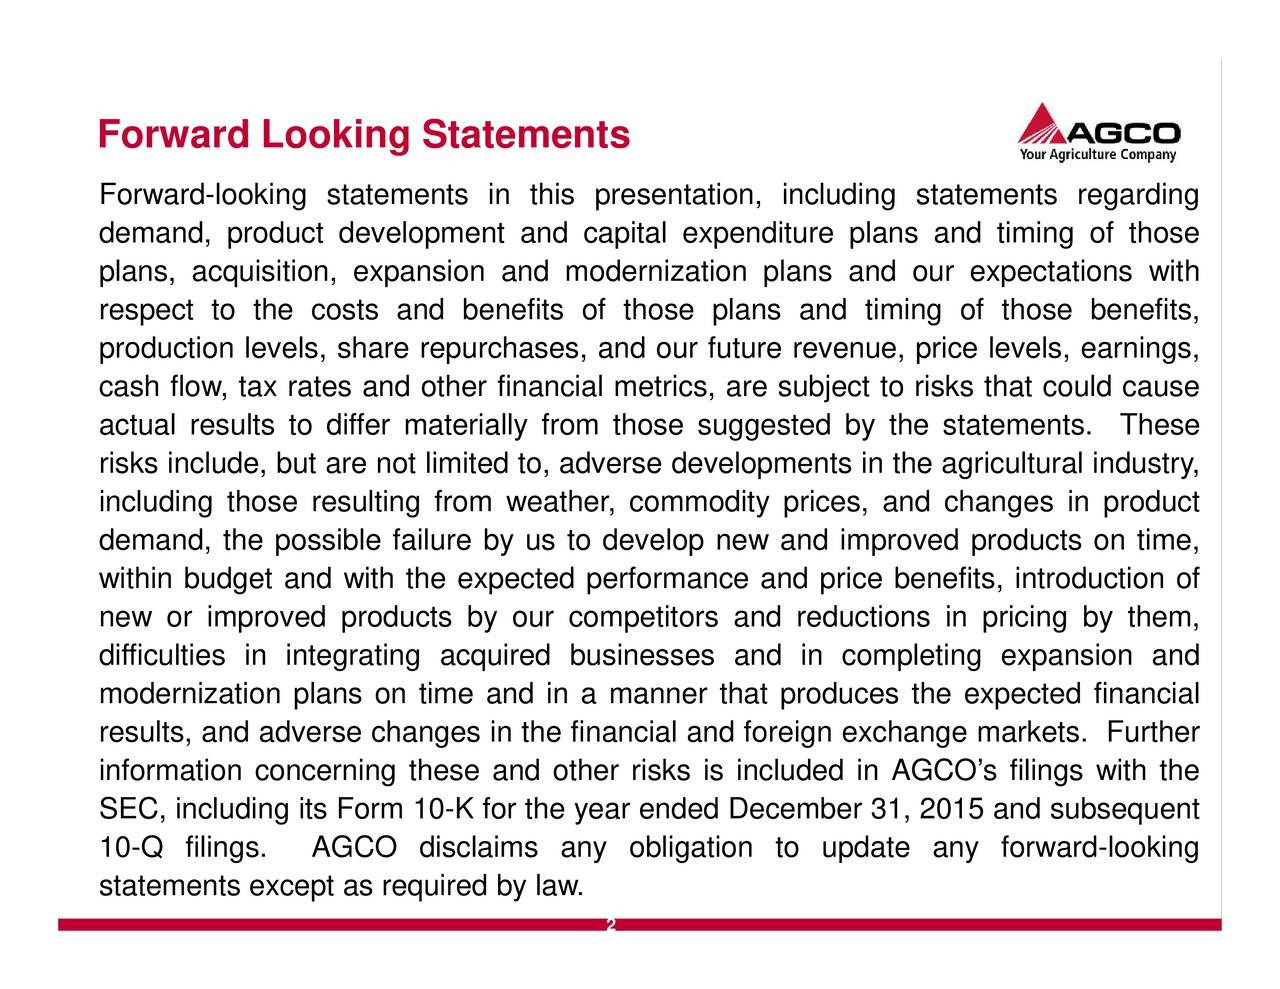 Forward-looking statements in this presentation, including statements regarding demand, product development and capital expenditure plans and timing of those plans, acquisition, expansion and modernization plans and our expectations with respect to the costs and benefits of those plans and timing of those benefits, production levels, share repurchases, and our future revenue, price levels, earnings, cash flow, tax rates and other financial metrics, are subject to risks that could cause actual results to differ materially from those suggested by the statements. These risks include, but are not limited to, adverse developments in the agricultural industry, including those resulting from weather, commodity prices, and changes in product demand, the possible failure by us to develop new and improved products on time, within budget and with the expected performance and price benefits, introduction of new or improved products by our competitors and reductions in pricing by them, difficulties in integrating acquired businesses and in completing expansion and modernization plans on time and in a manner that produces the expected financial results, and adverse changes in the financial and foreign exchange markets. Further information concerning these and other risks is included in AGCOs filings with the SEC, including its Form 10-K for the year ended December 31, 2015 and subsequent 10-Q filings. AGCO disclaims any obligation to update any forward-looking statements except as required by law. 2